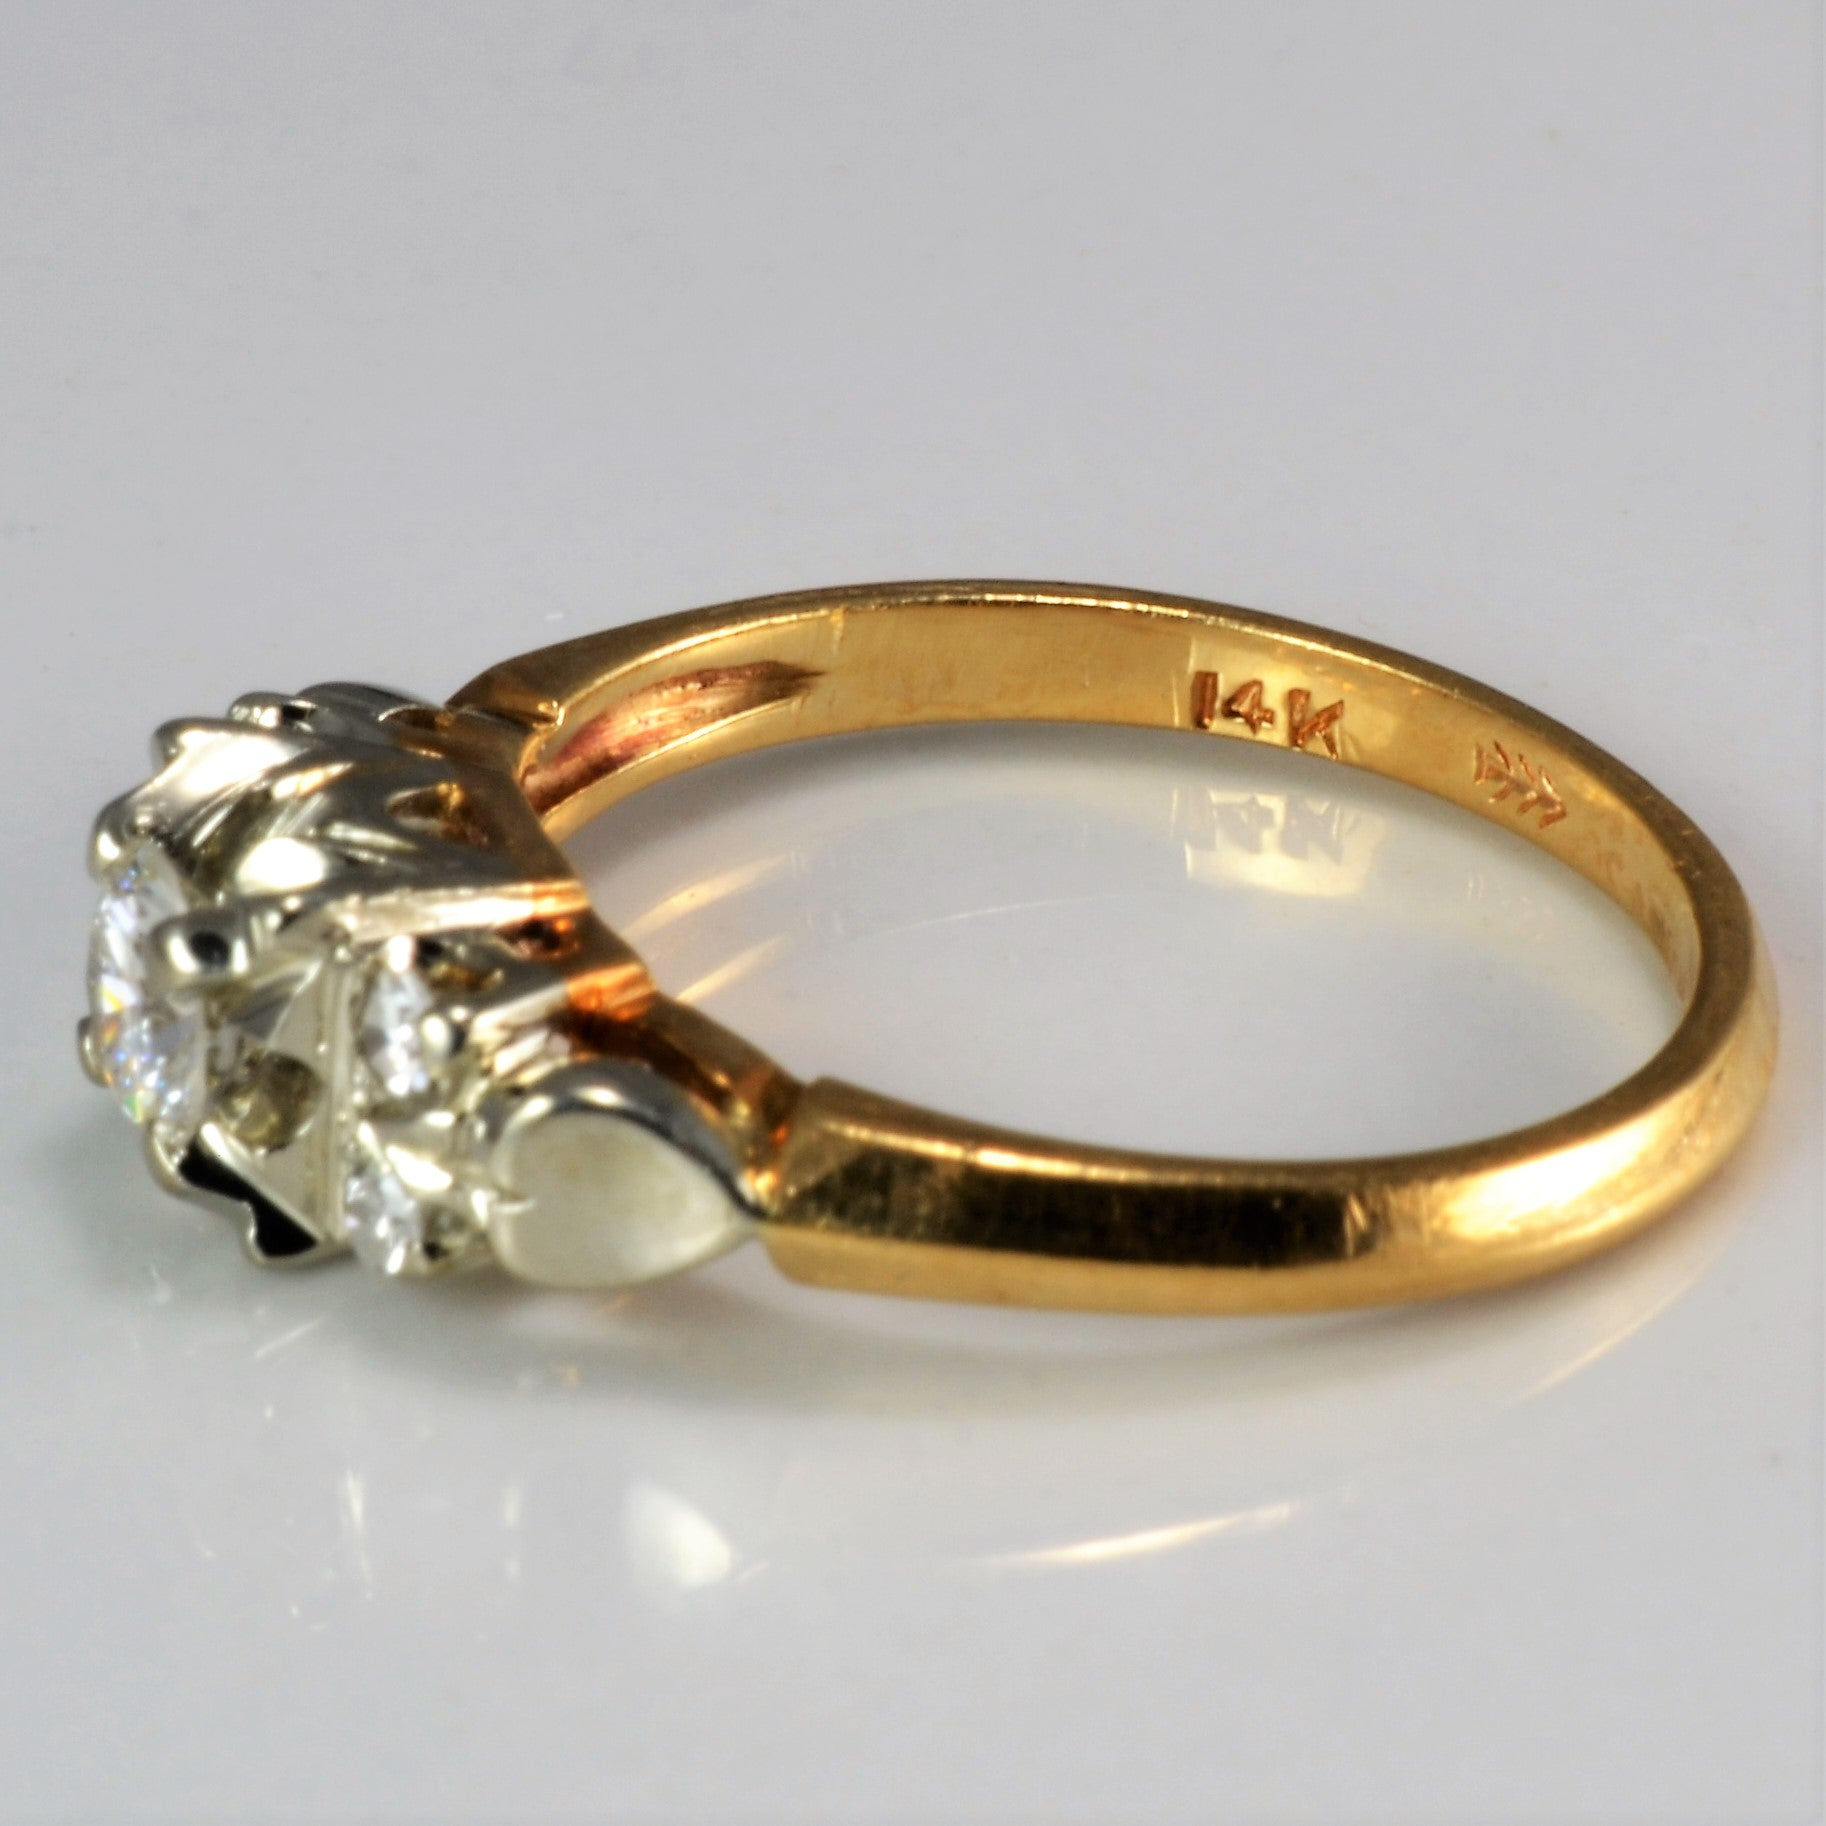 Retro Diamond Engagement Ring | 0.32 ctw, SZ 5.25 |